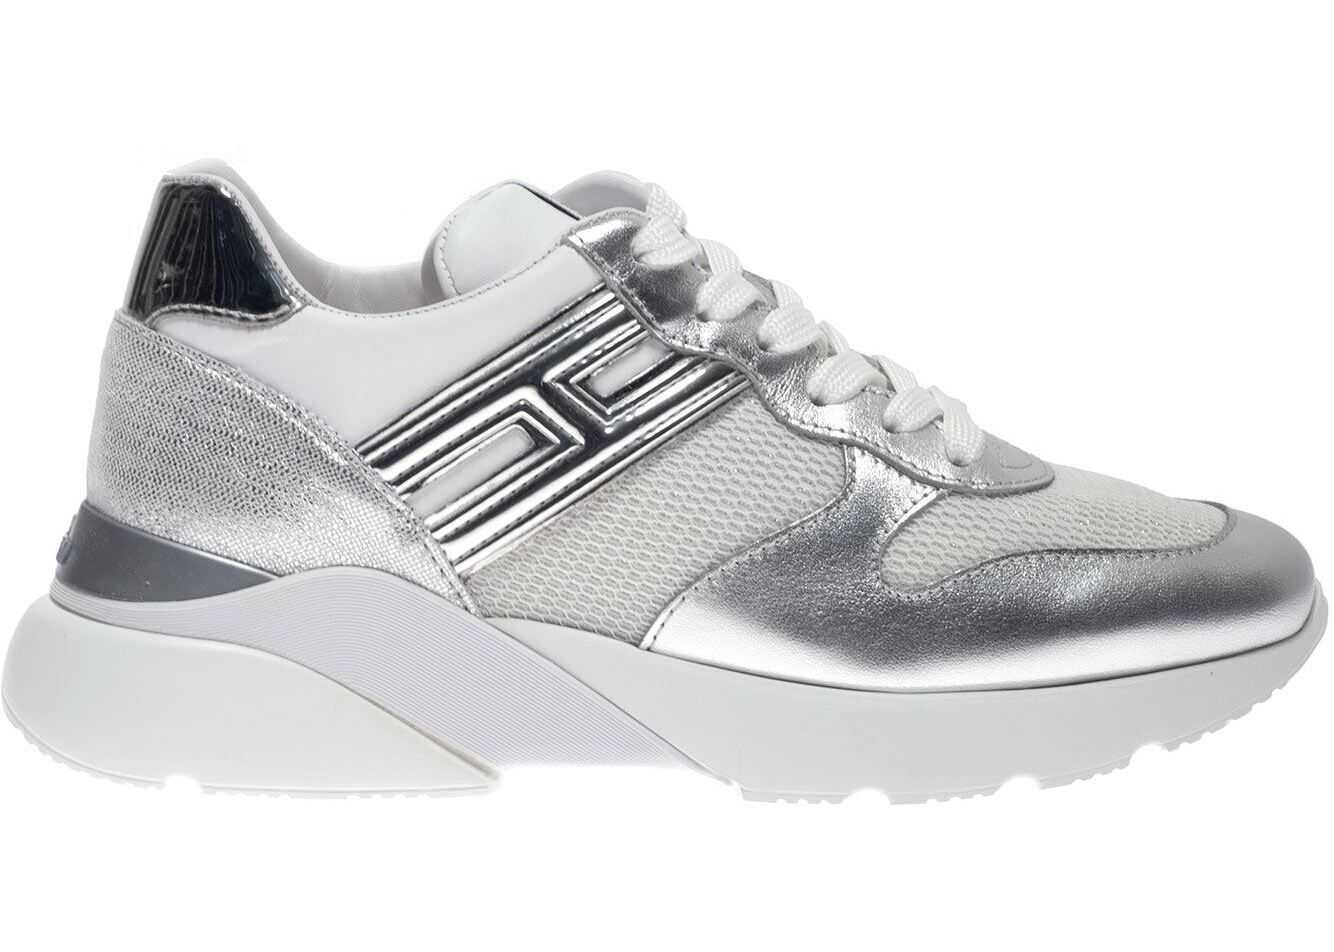 Hogan Active One Sneakers In White And Silver White